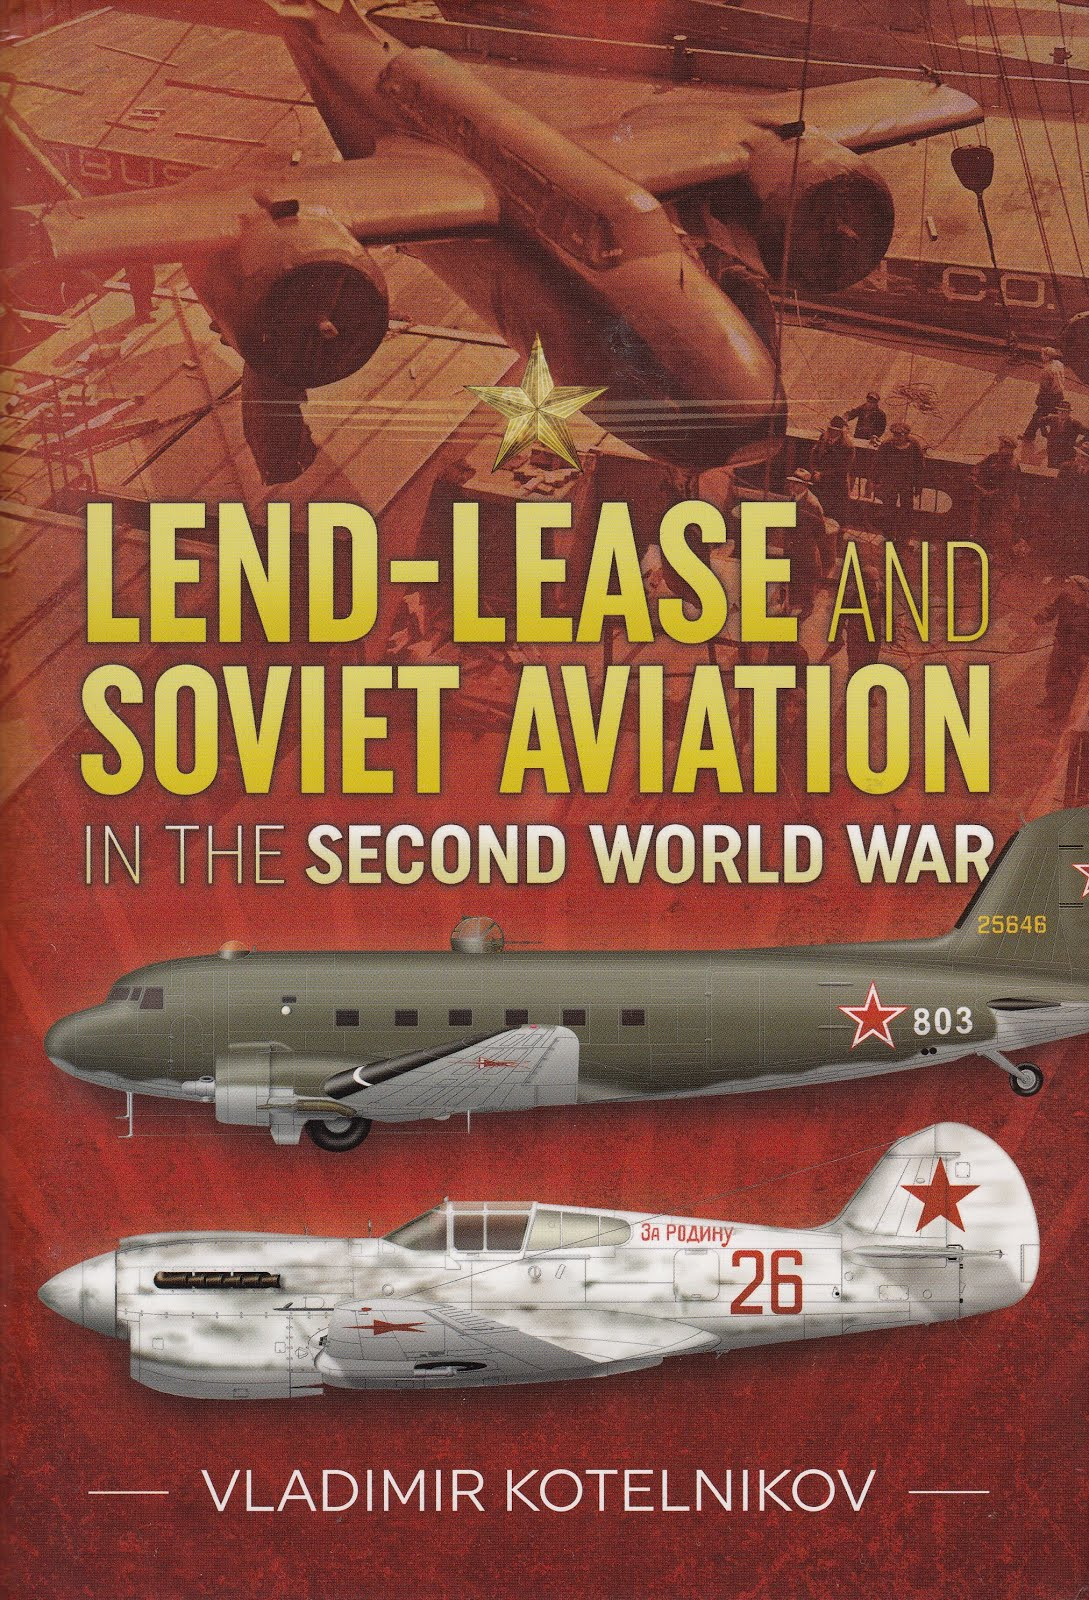 Lend-Lease and Soviet Aviation